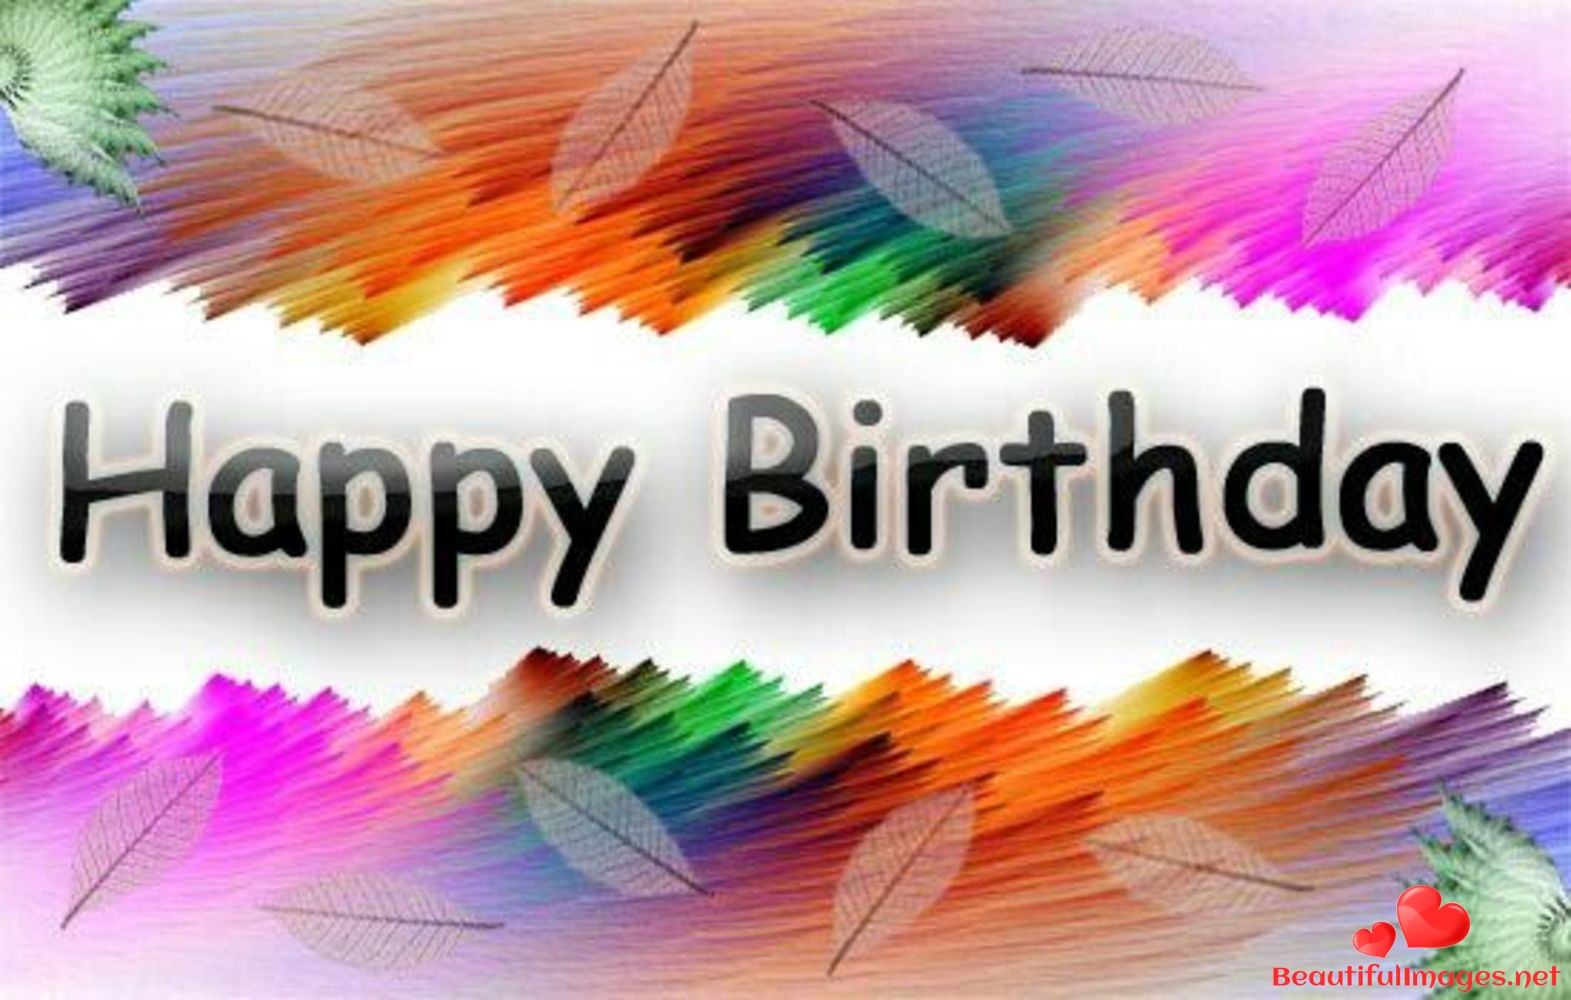 Happy-Birthday-Images-Pictures-Whatsapp-228